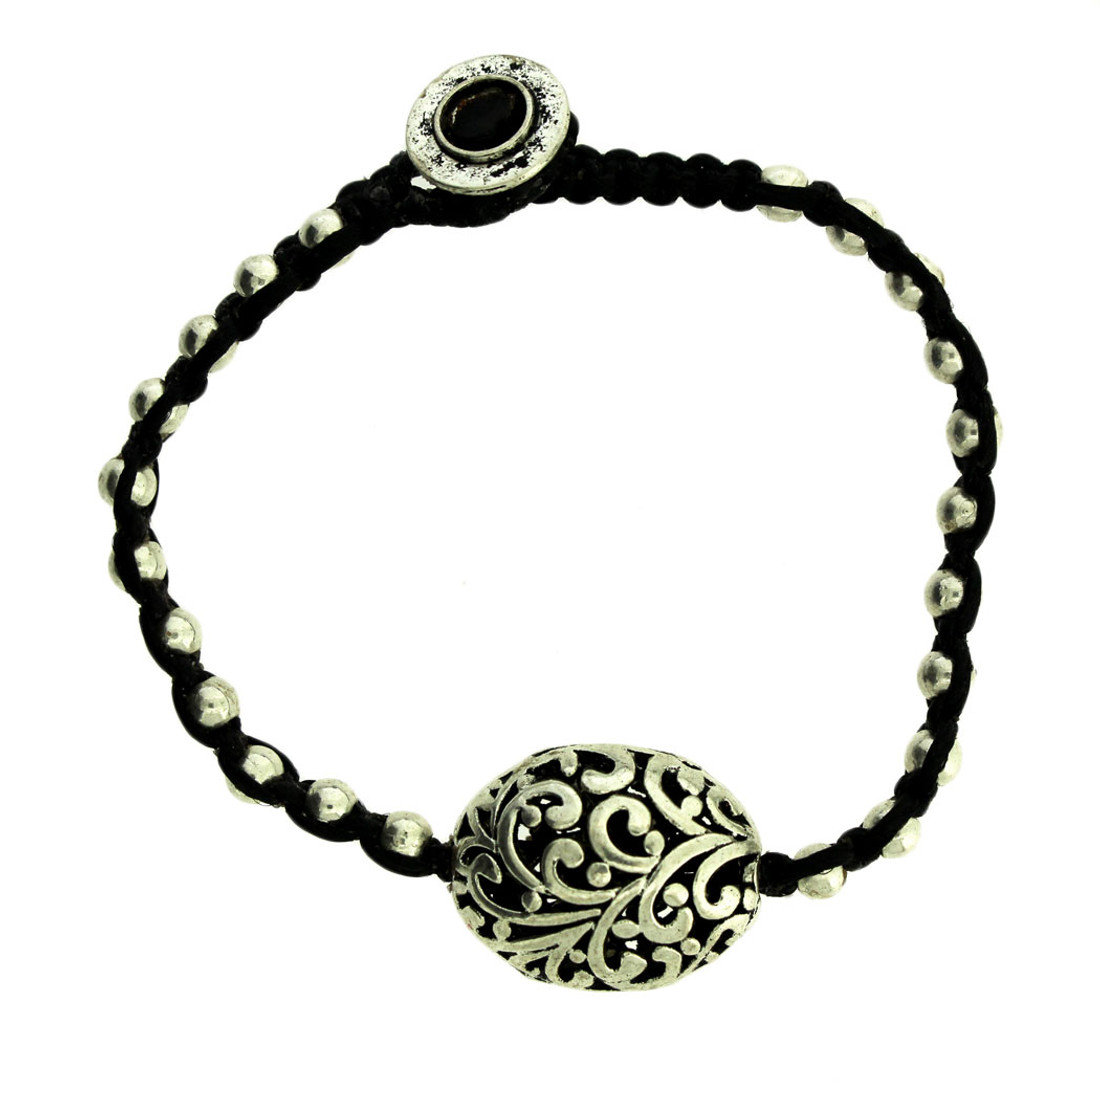 One large floral design alloy bead with smaller alloy beads on bracelet.